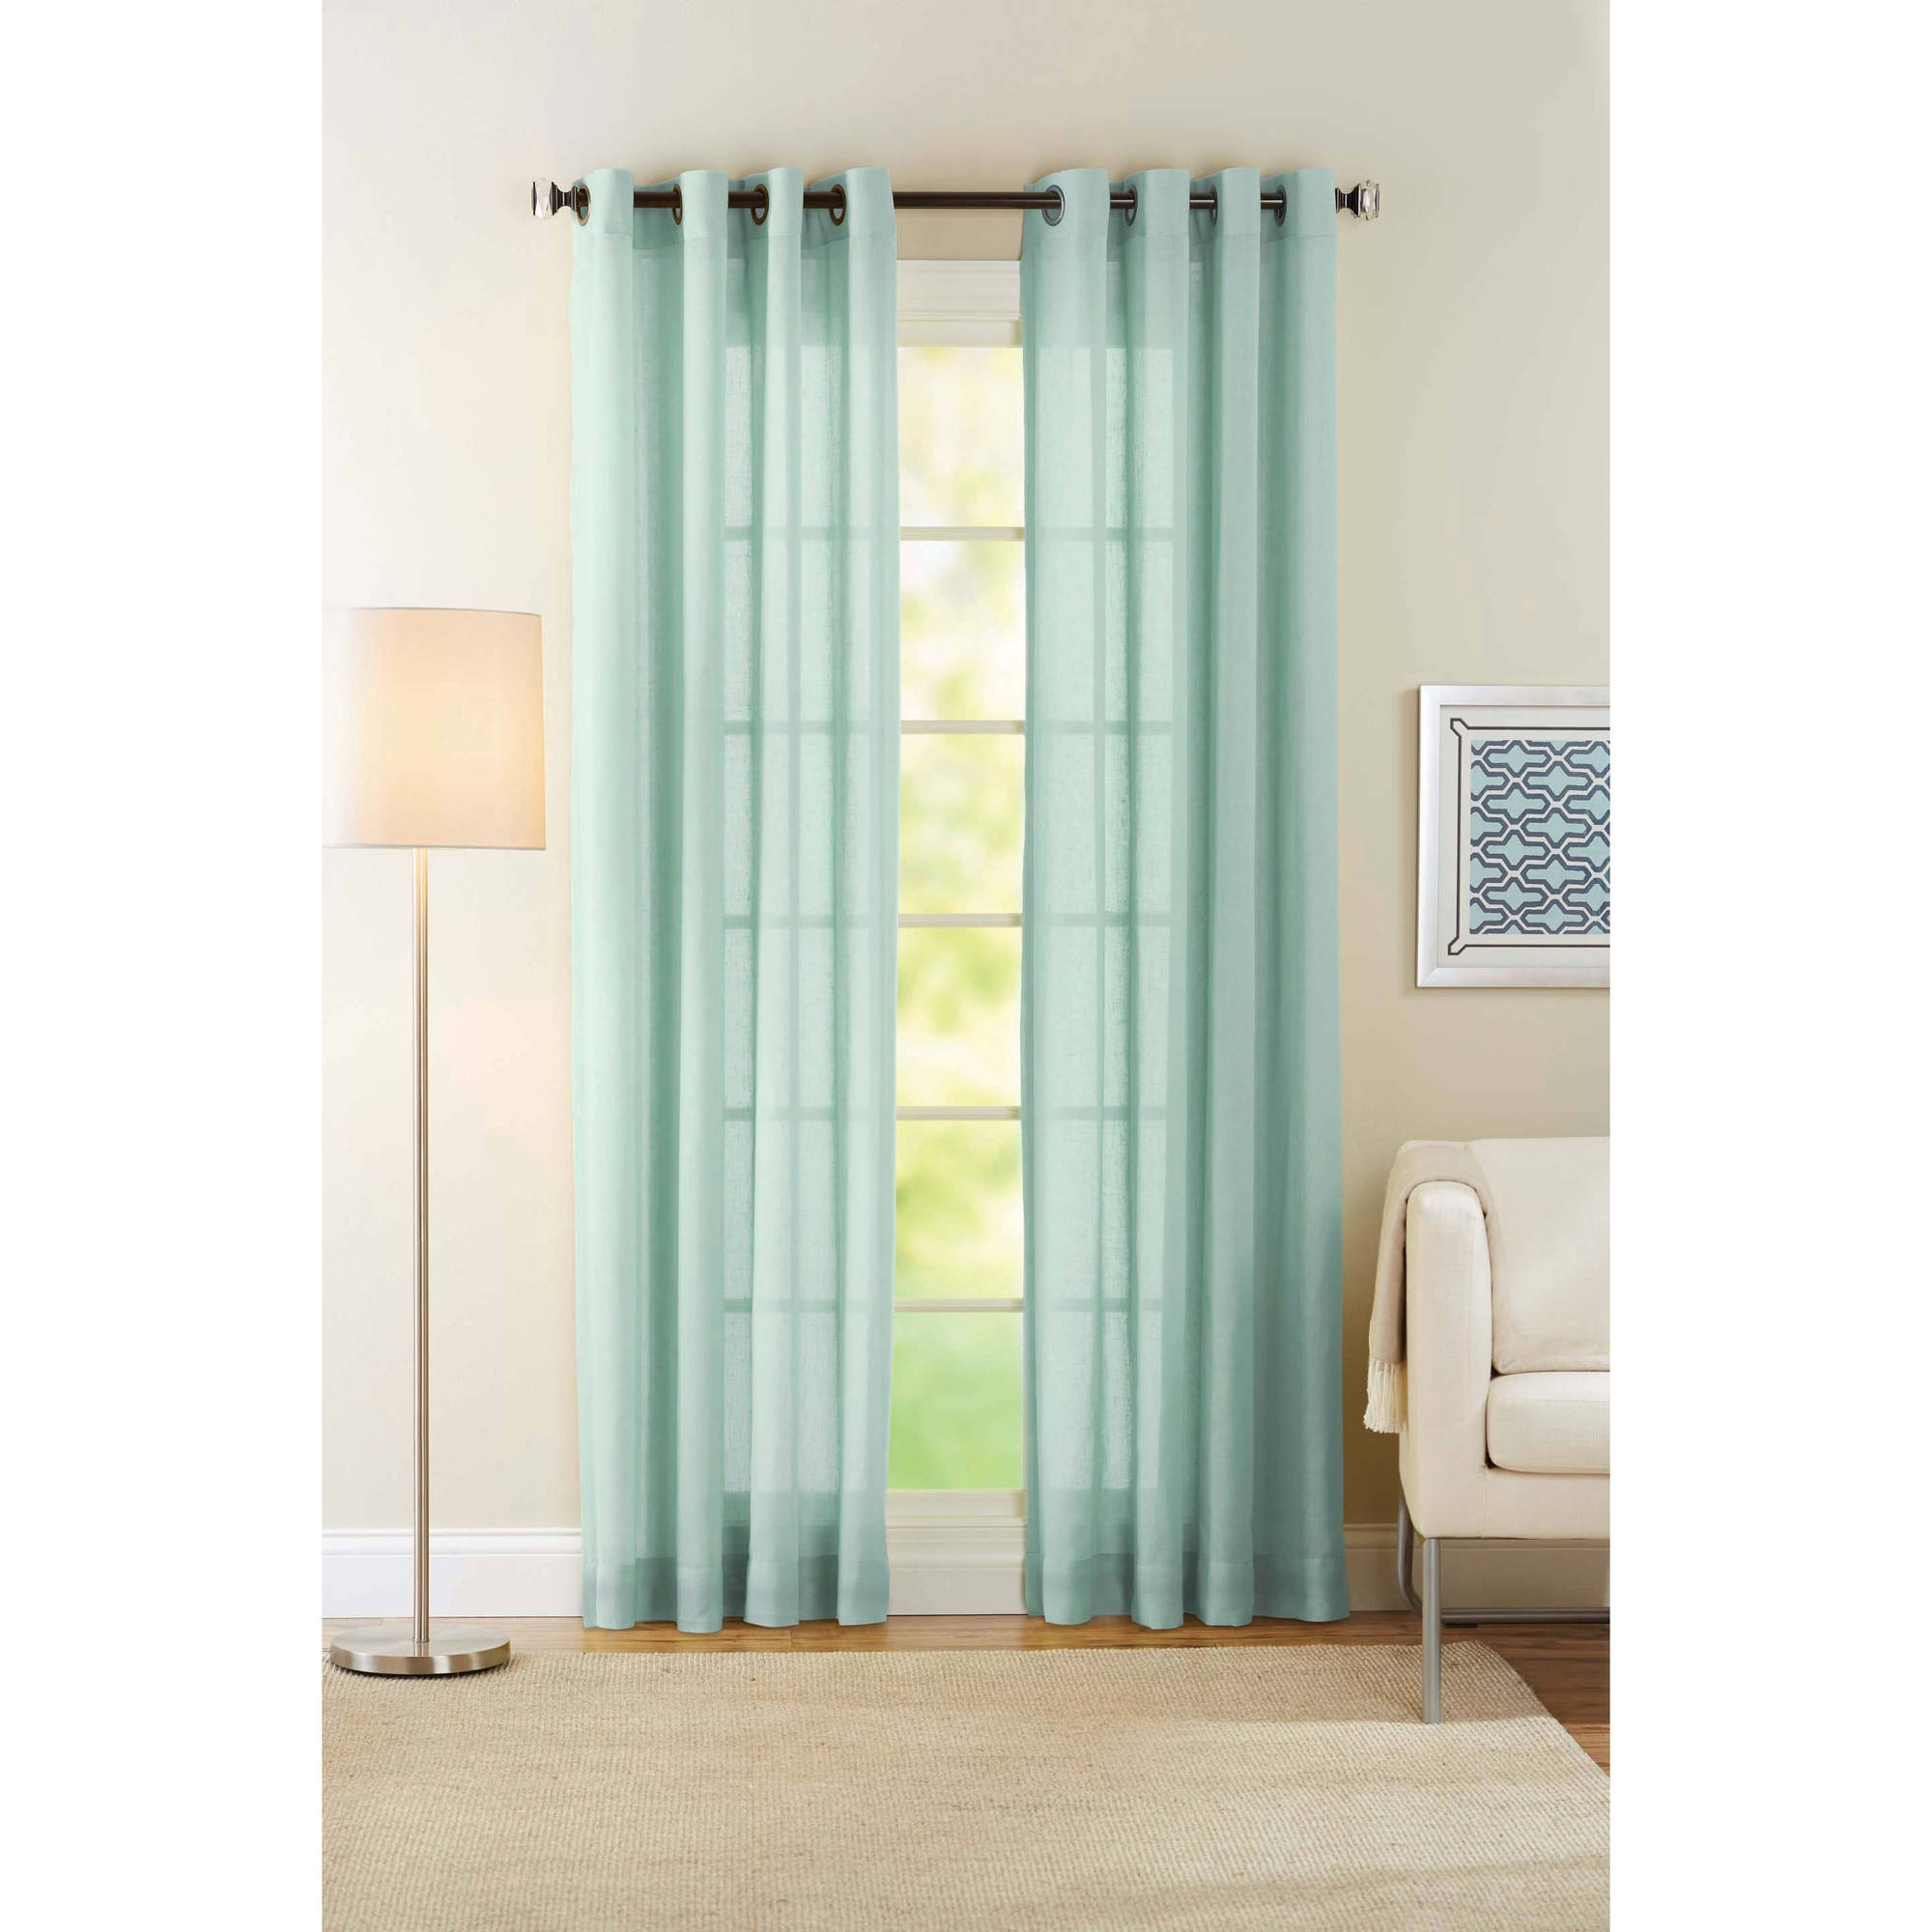 Aqua Curtains Throughout Turquoise Trellis Curtains (View 24 of 25)